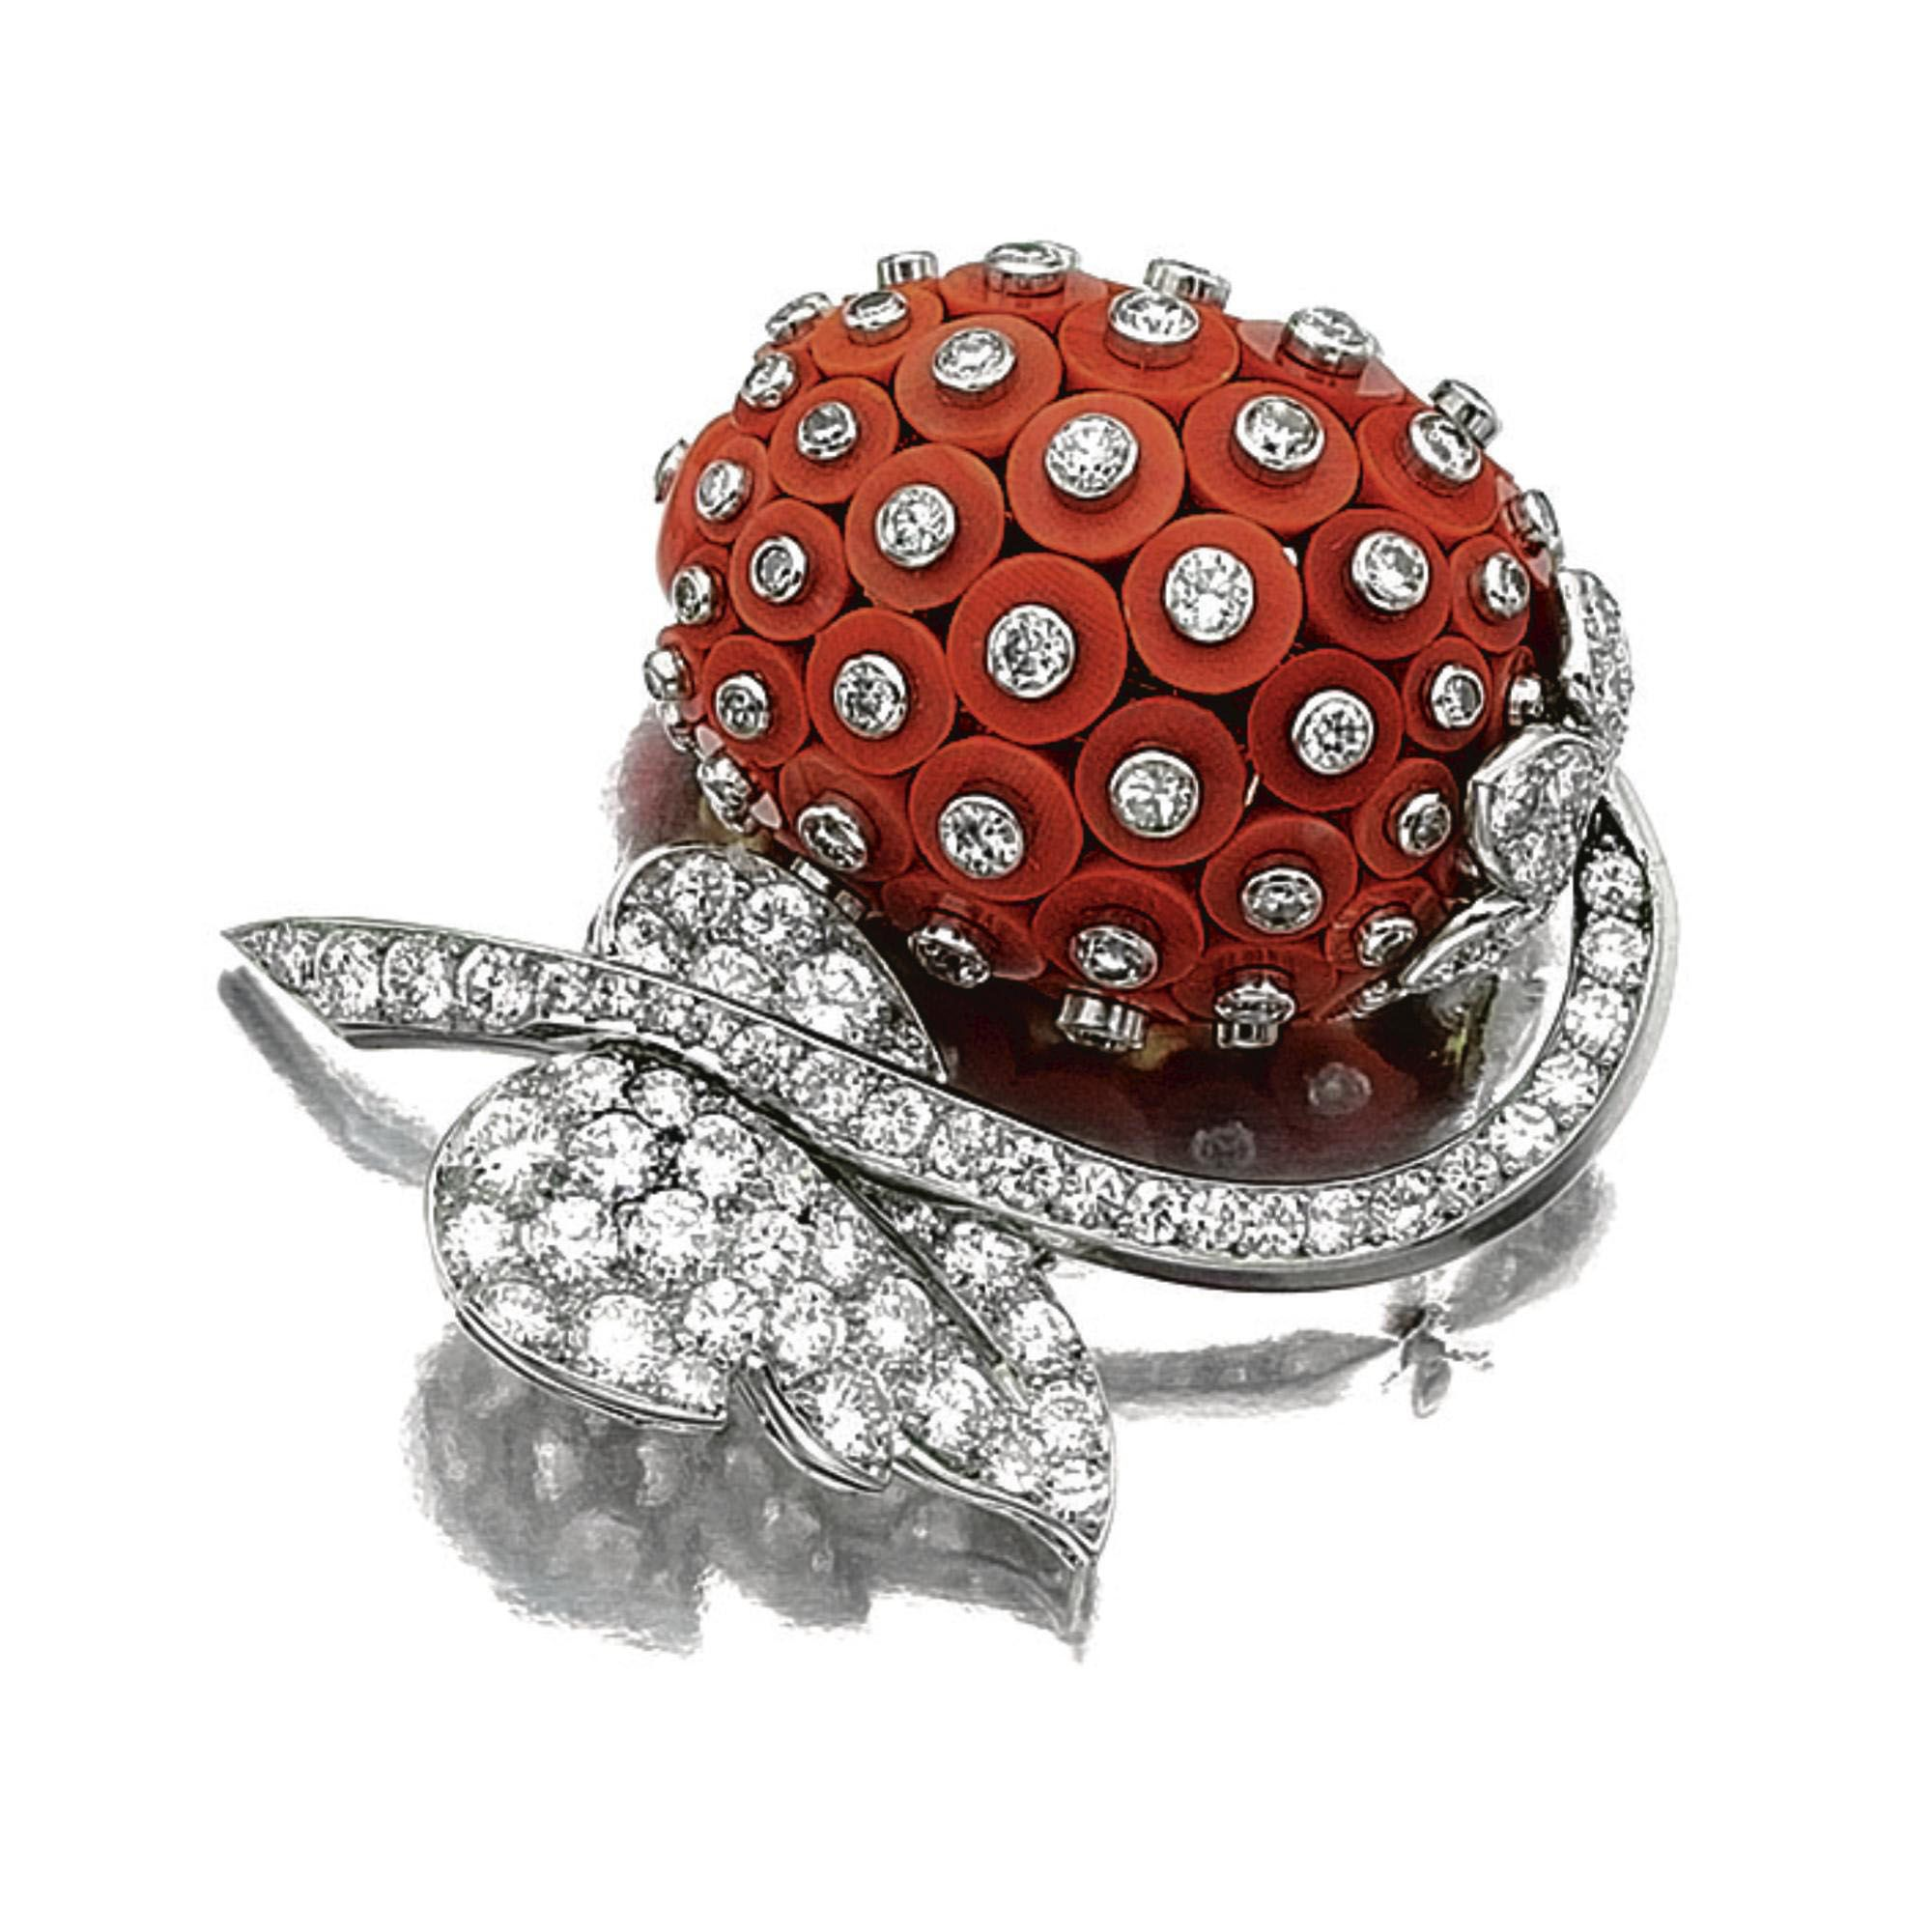 CORAL AND DIAMOND BROOCH, CARTIER, 1950S. Of stylised floral design, set with coral discs studded with circular-, single- and brilliant-cut diamonds, the stem and leaf set with similar stones, mounted in platinum, signed Cartier Paris, French assay and maker's marks.